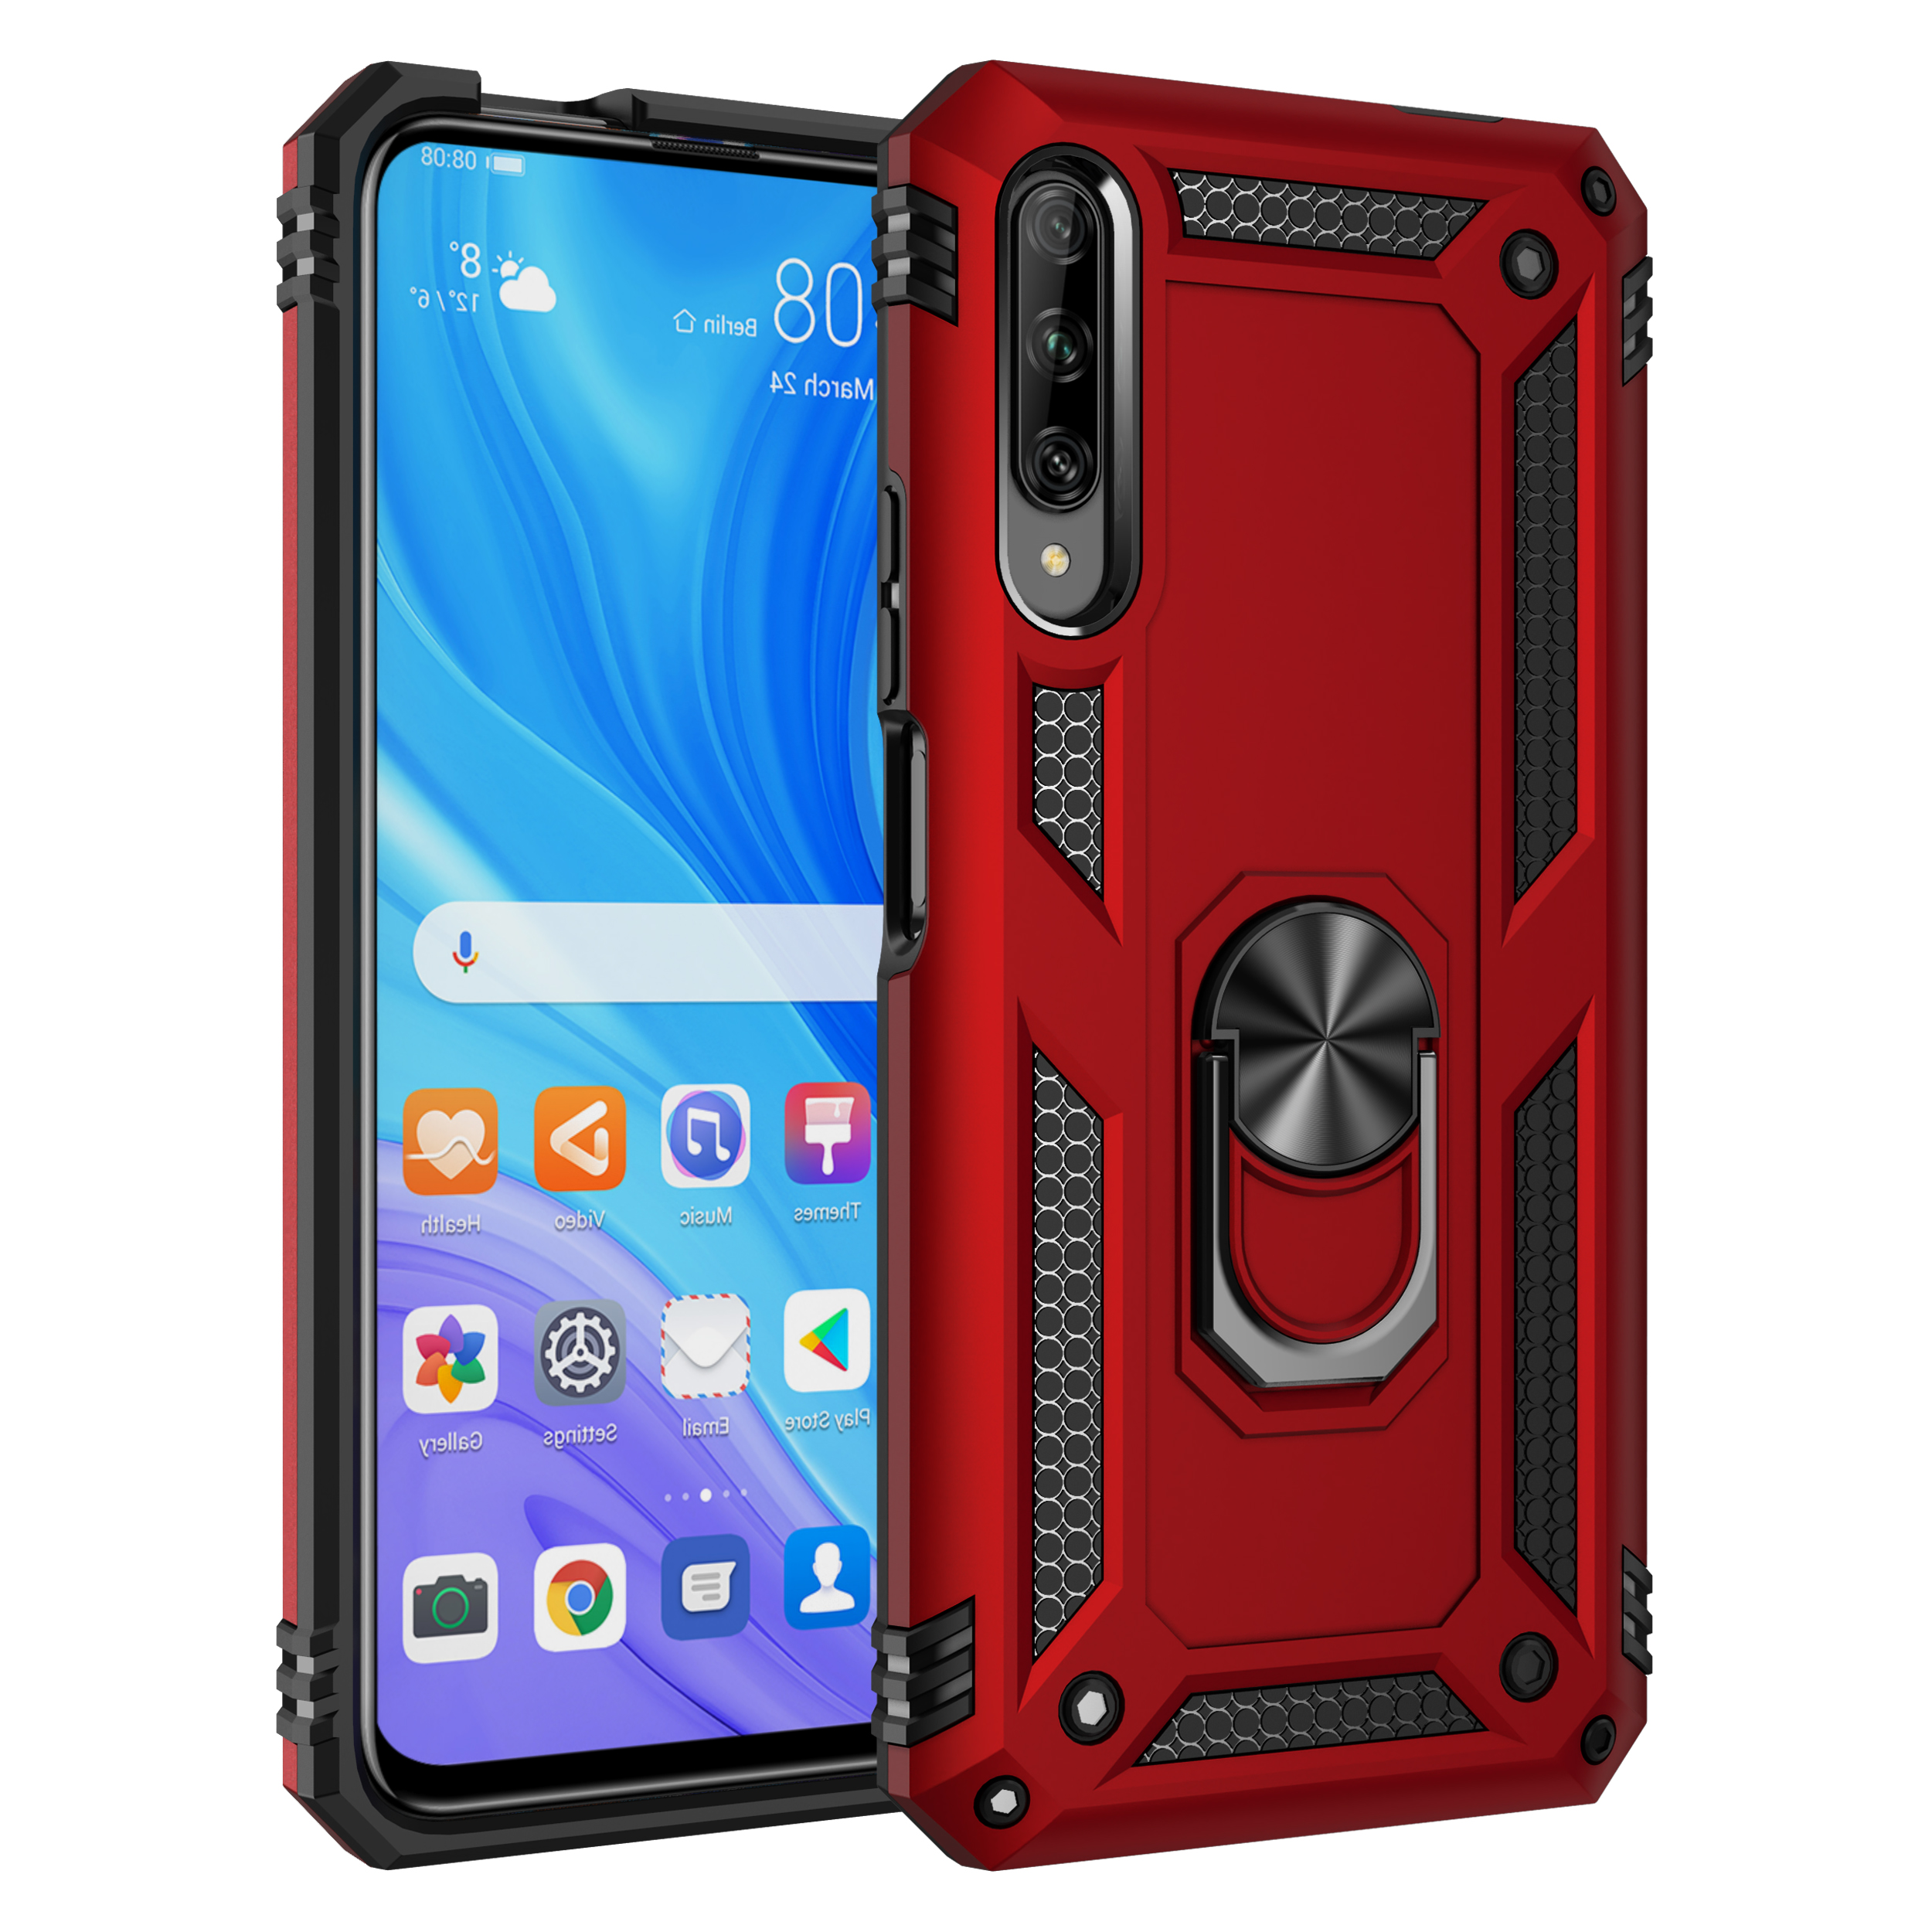 2019 New Arrivals Shockproof Bracket Ring Holder Car Magnet Armor Case For Huawei Y9s/<strong>P</strong> smart Pro 2019/Honor 9X Pro